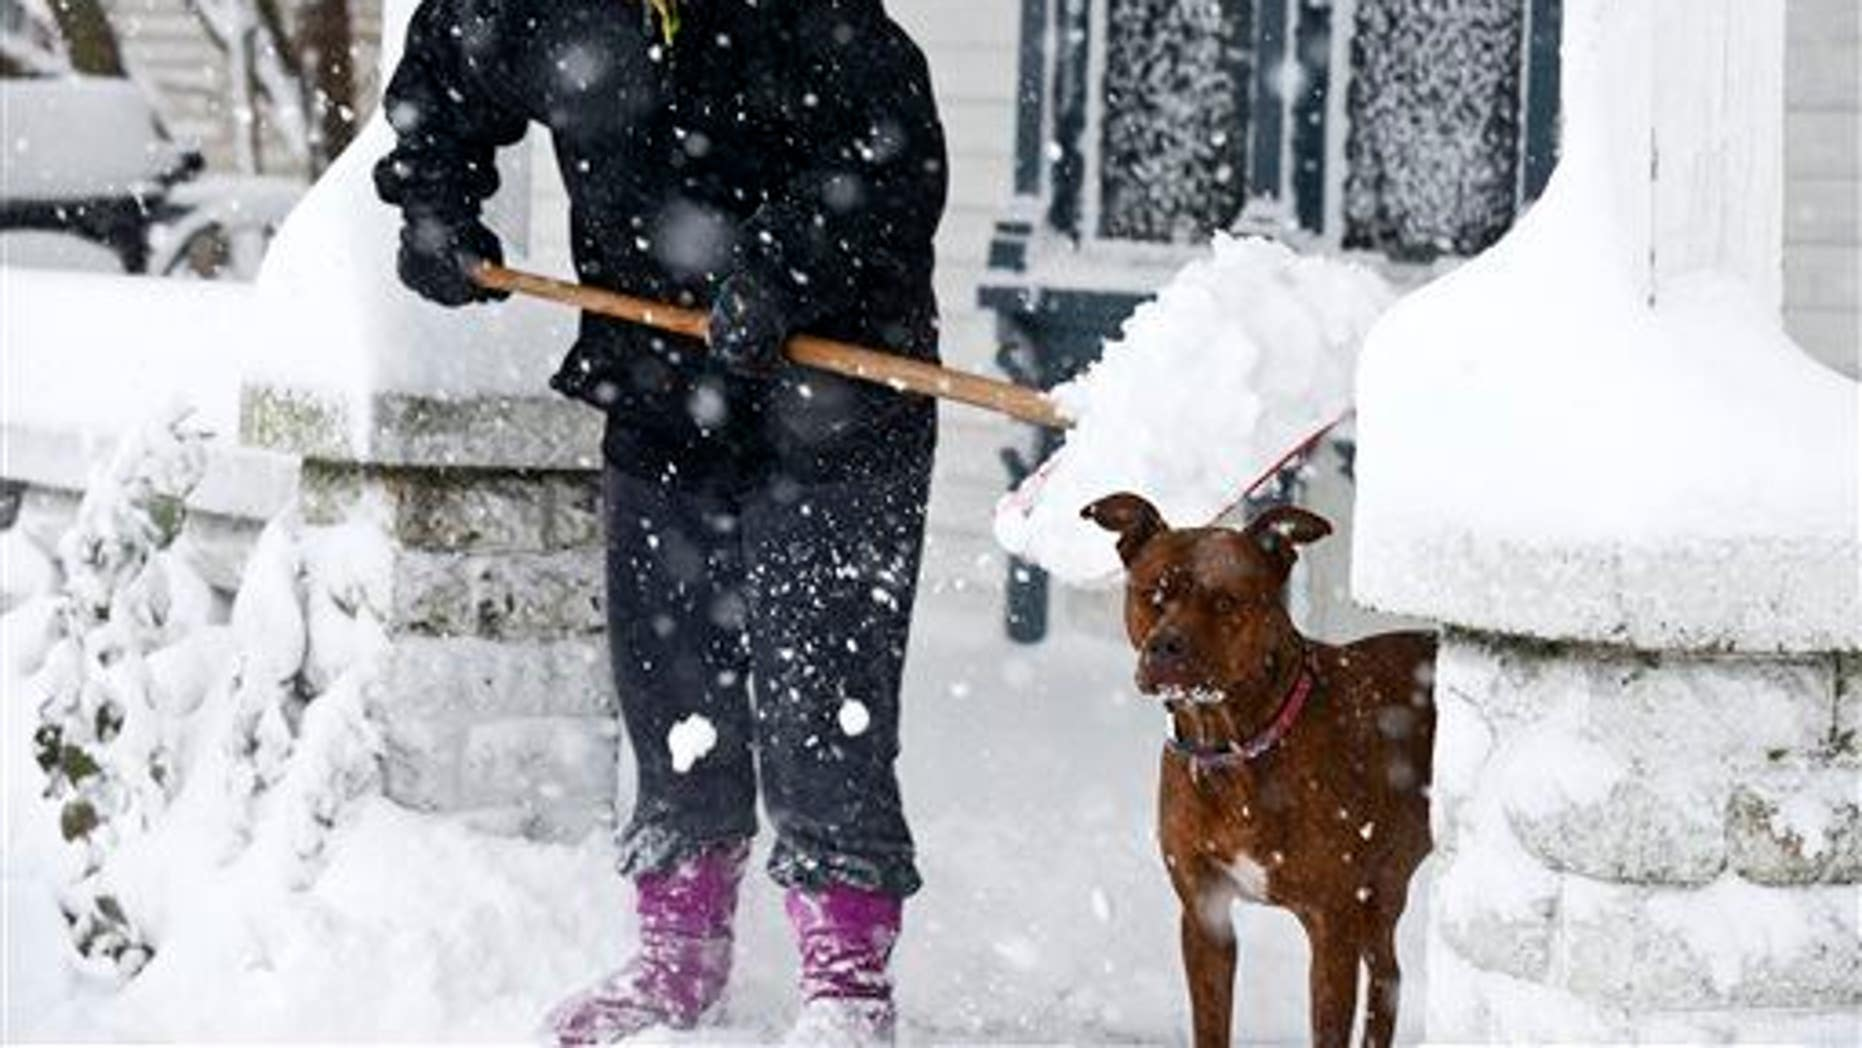 Lauren Hansen shovels snow off her porch as her dog Kapone stands by, Tuesday, Nov. 18, 2014, in Grand Rapids, Mich.